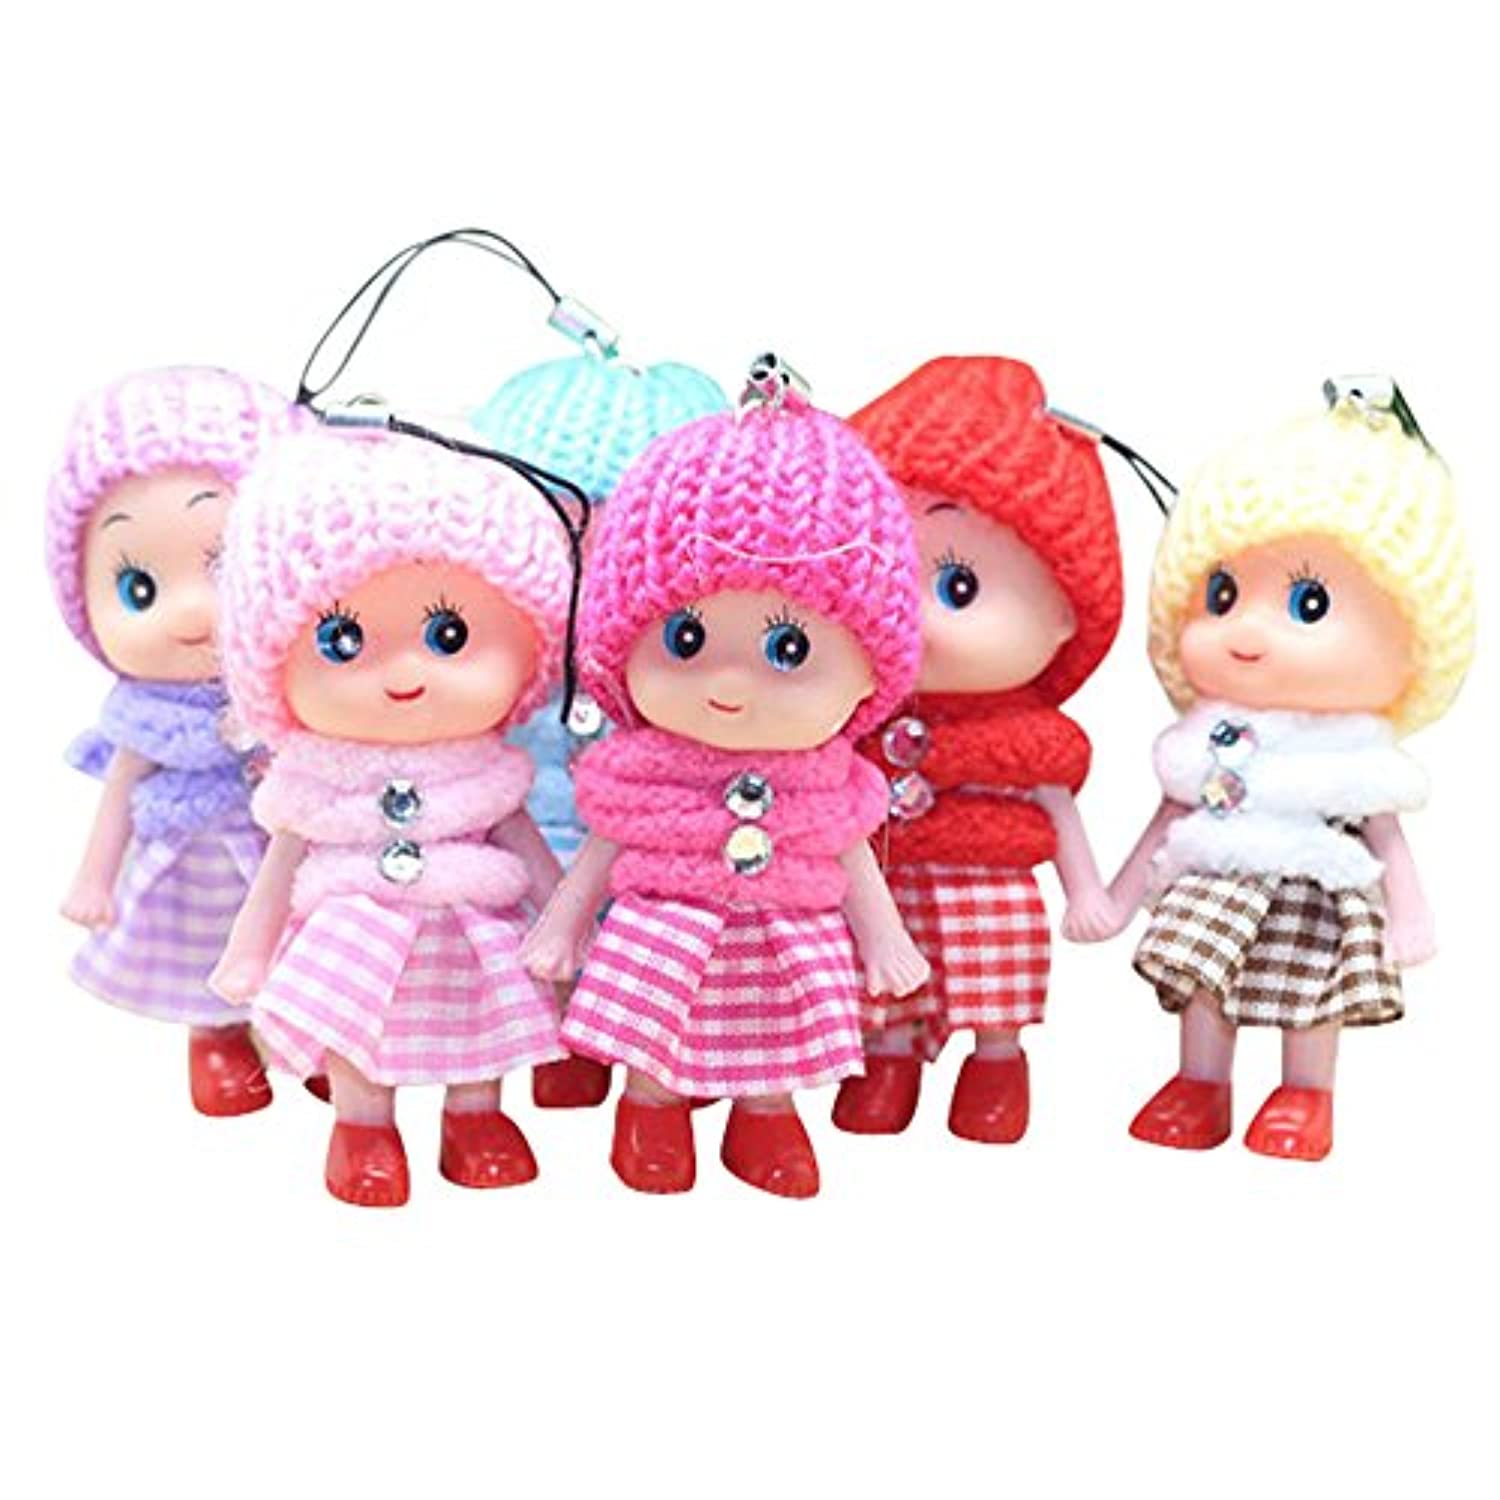 5Pcs Kids Toys Soft Interactive Baby Dolls Toy,Littleice Mini Doll For Girls and Boys Hot For Smartphone